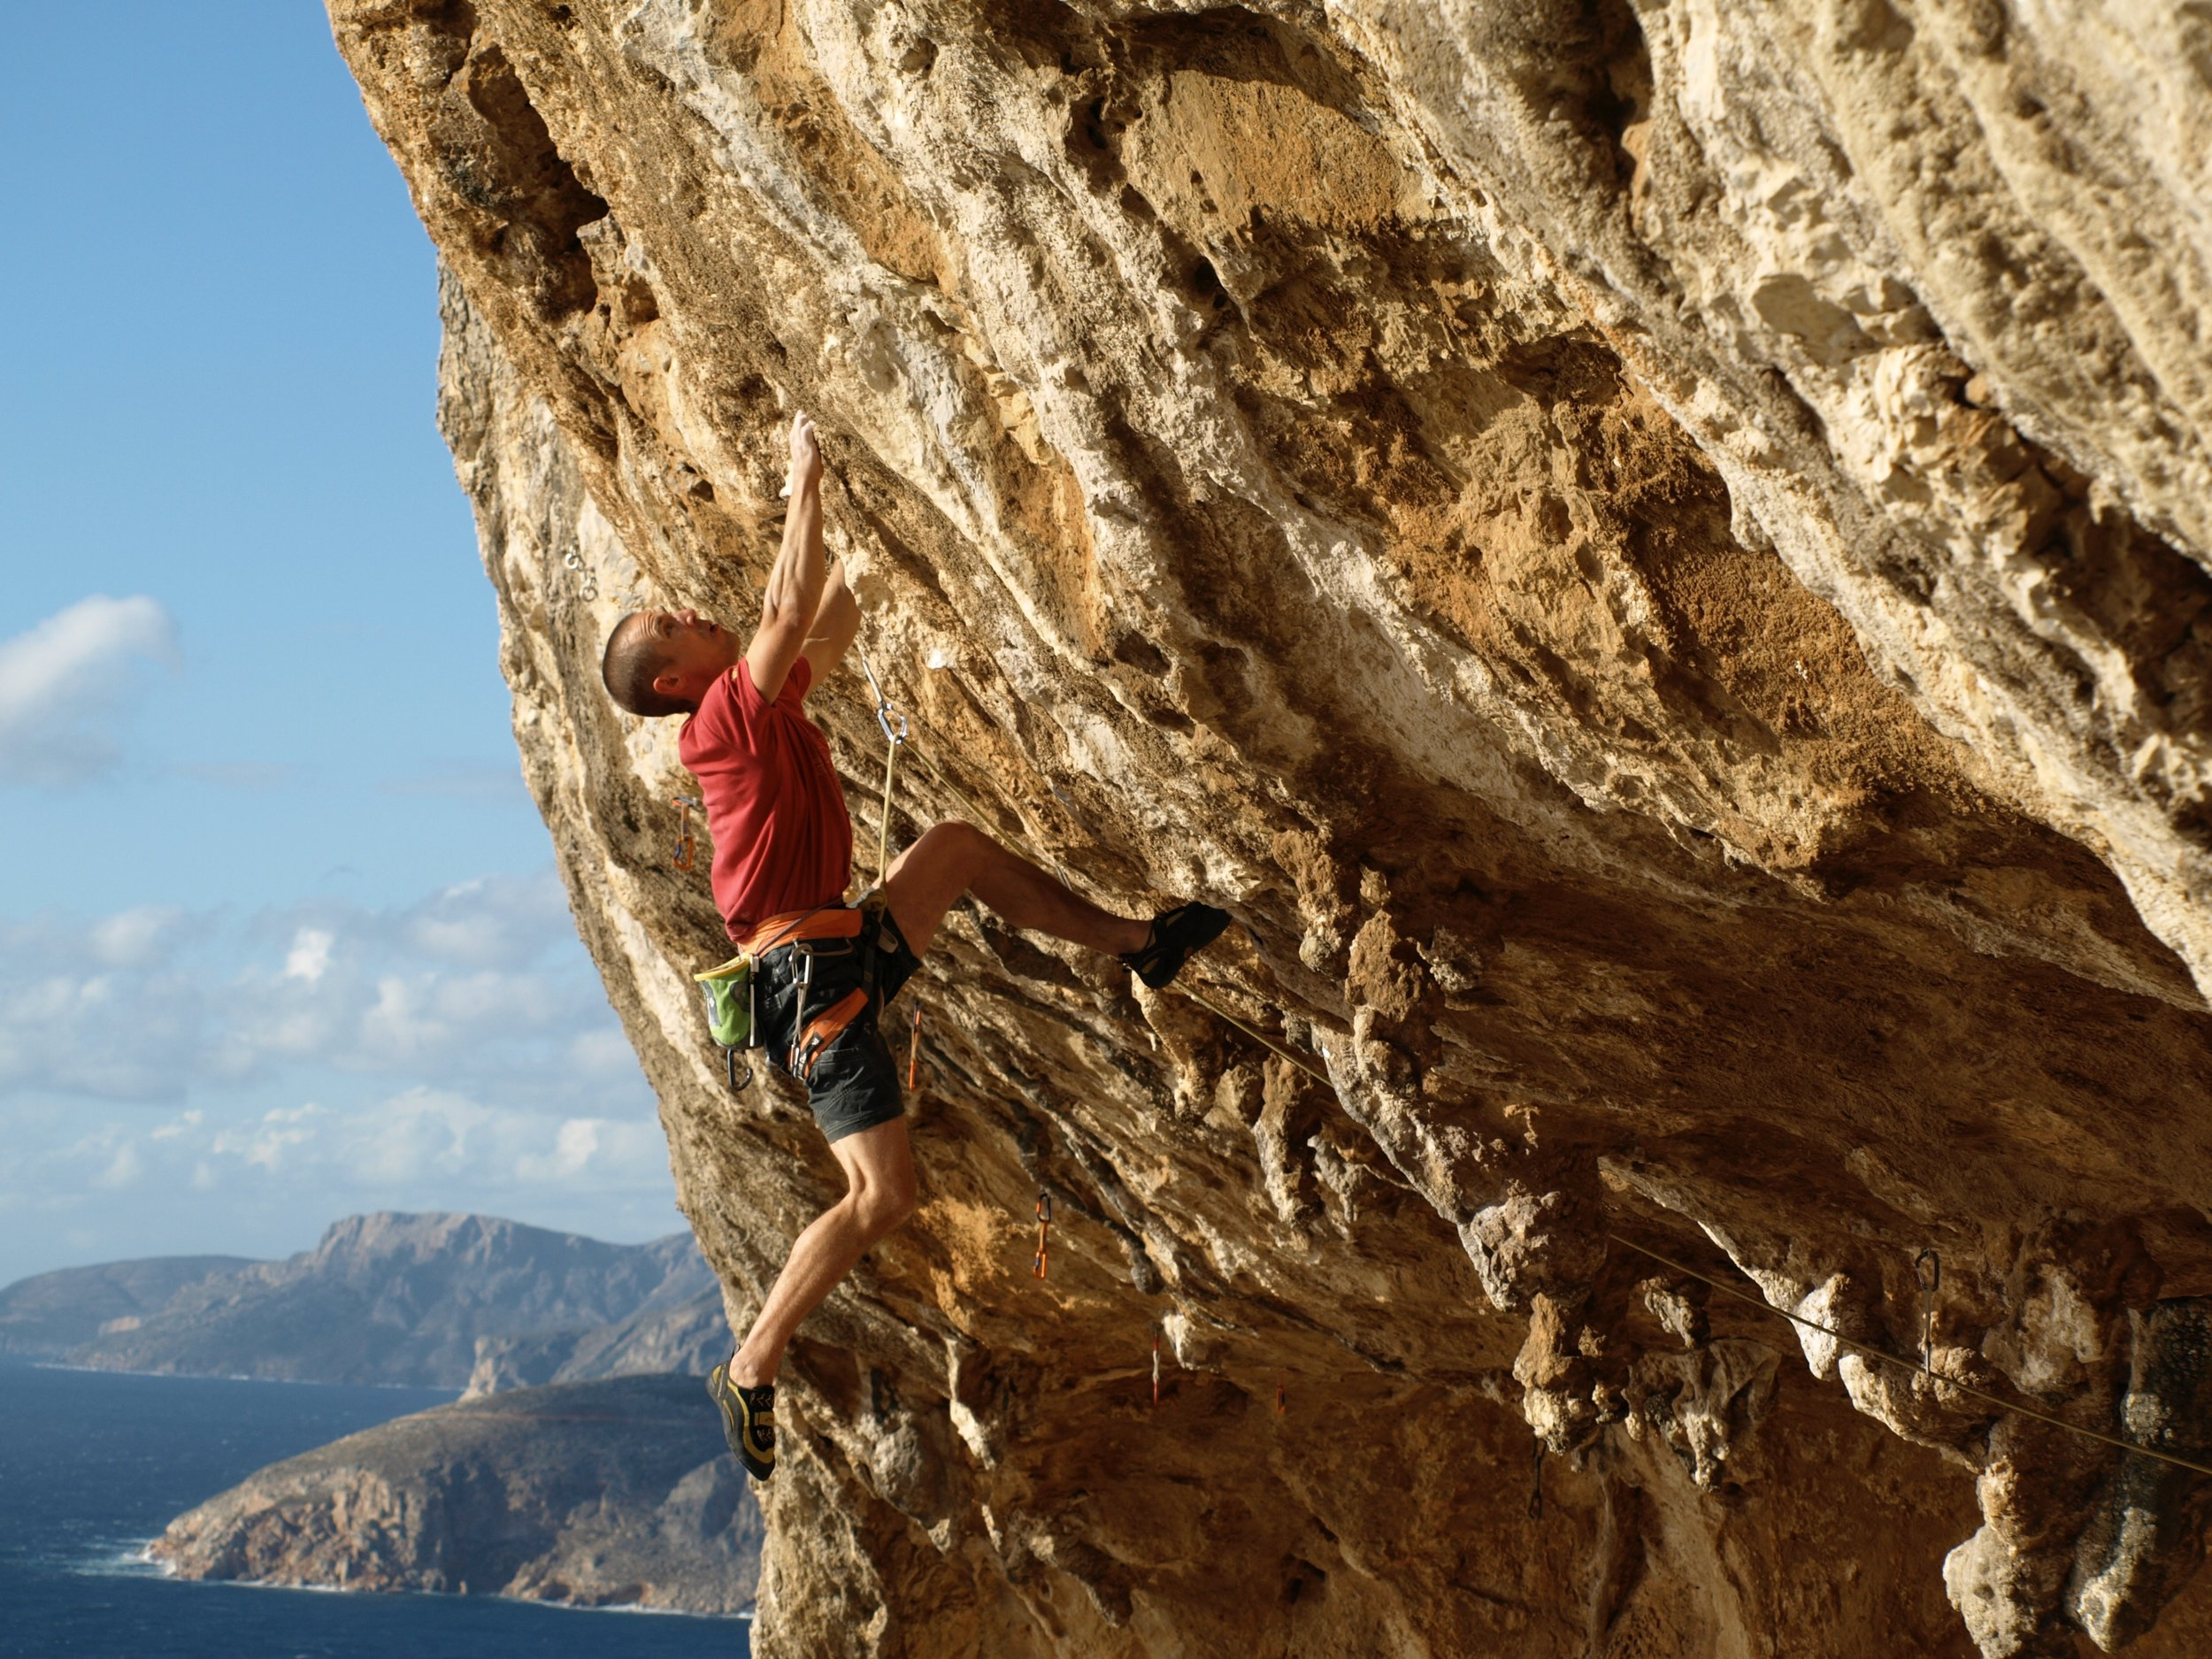 Valley of the Dolls 8a+/b, Kalymnos. First ascent in 2009.  Photo: Nathan Rogers